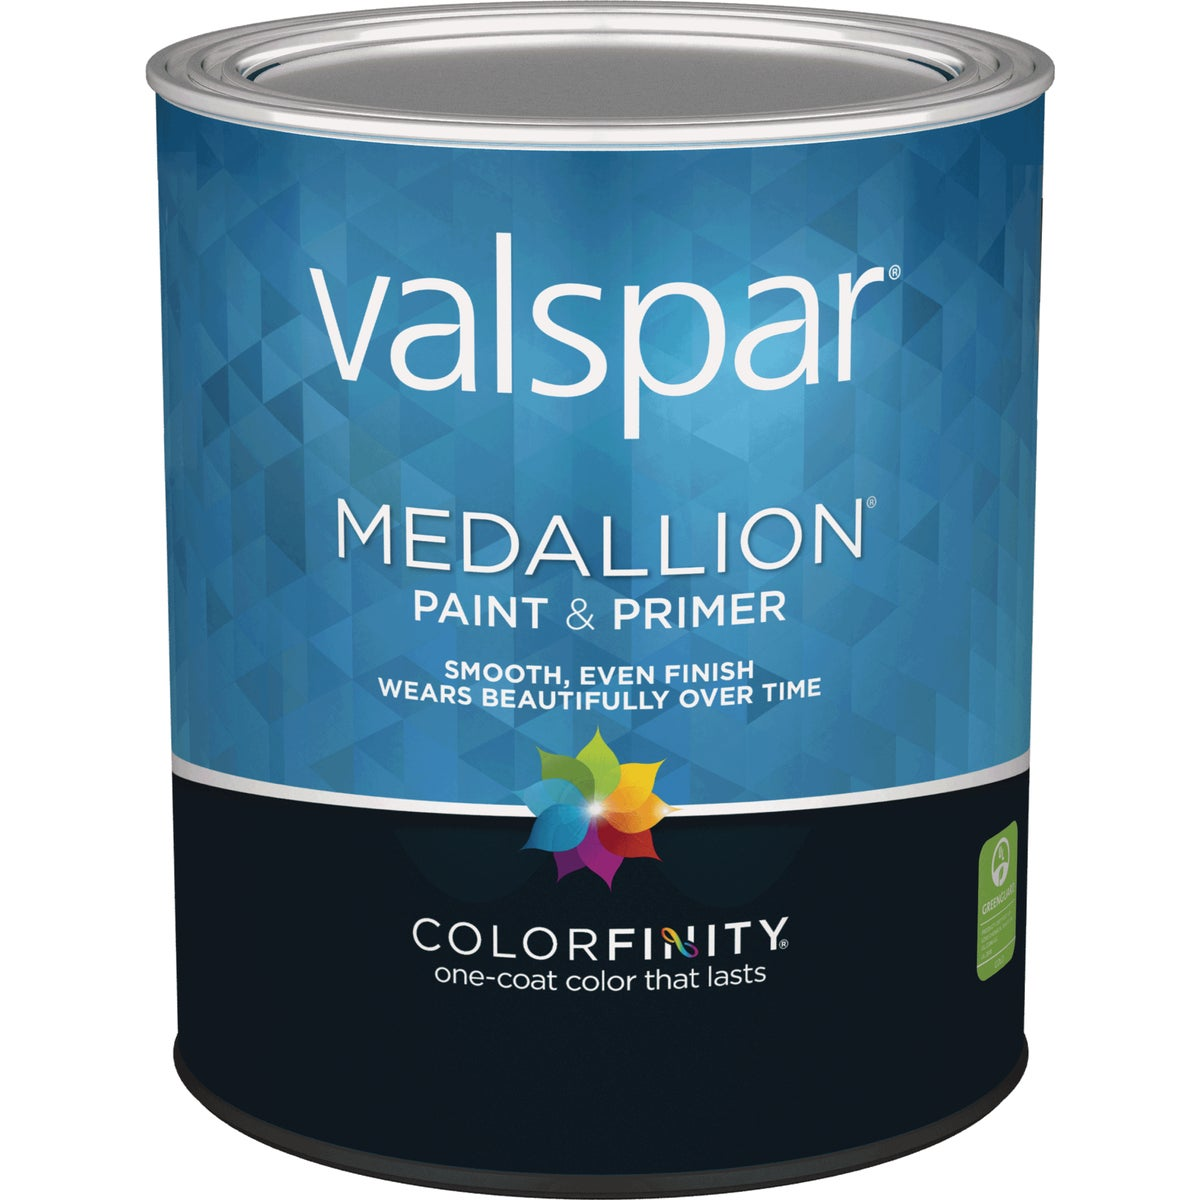 INT S/G WHITE PAINT - 027.0002400.005 by Valspar Corp